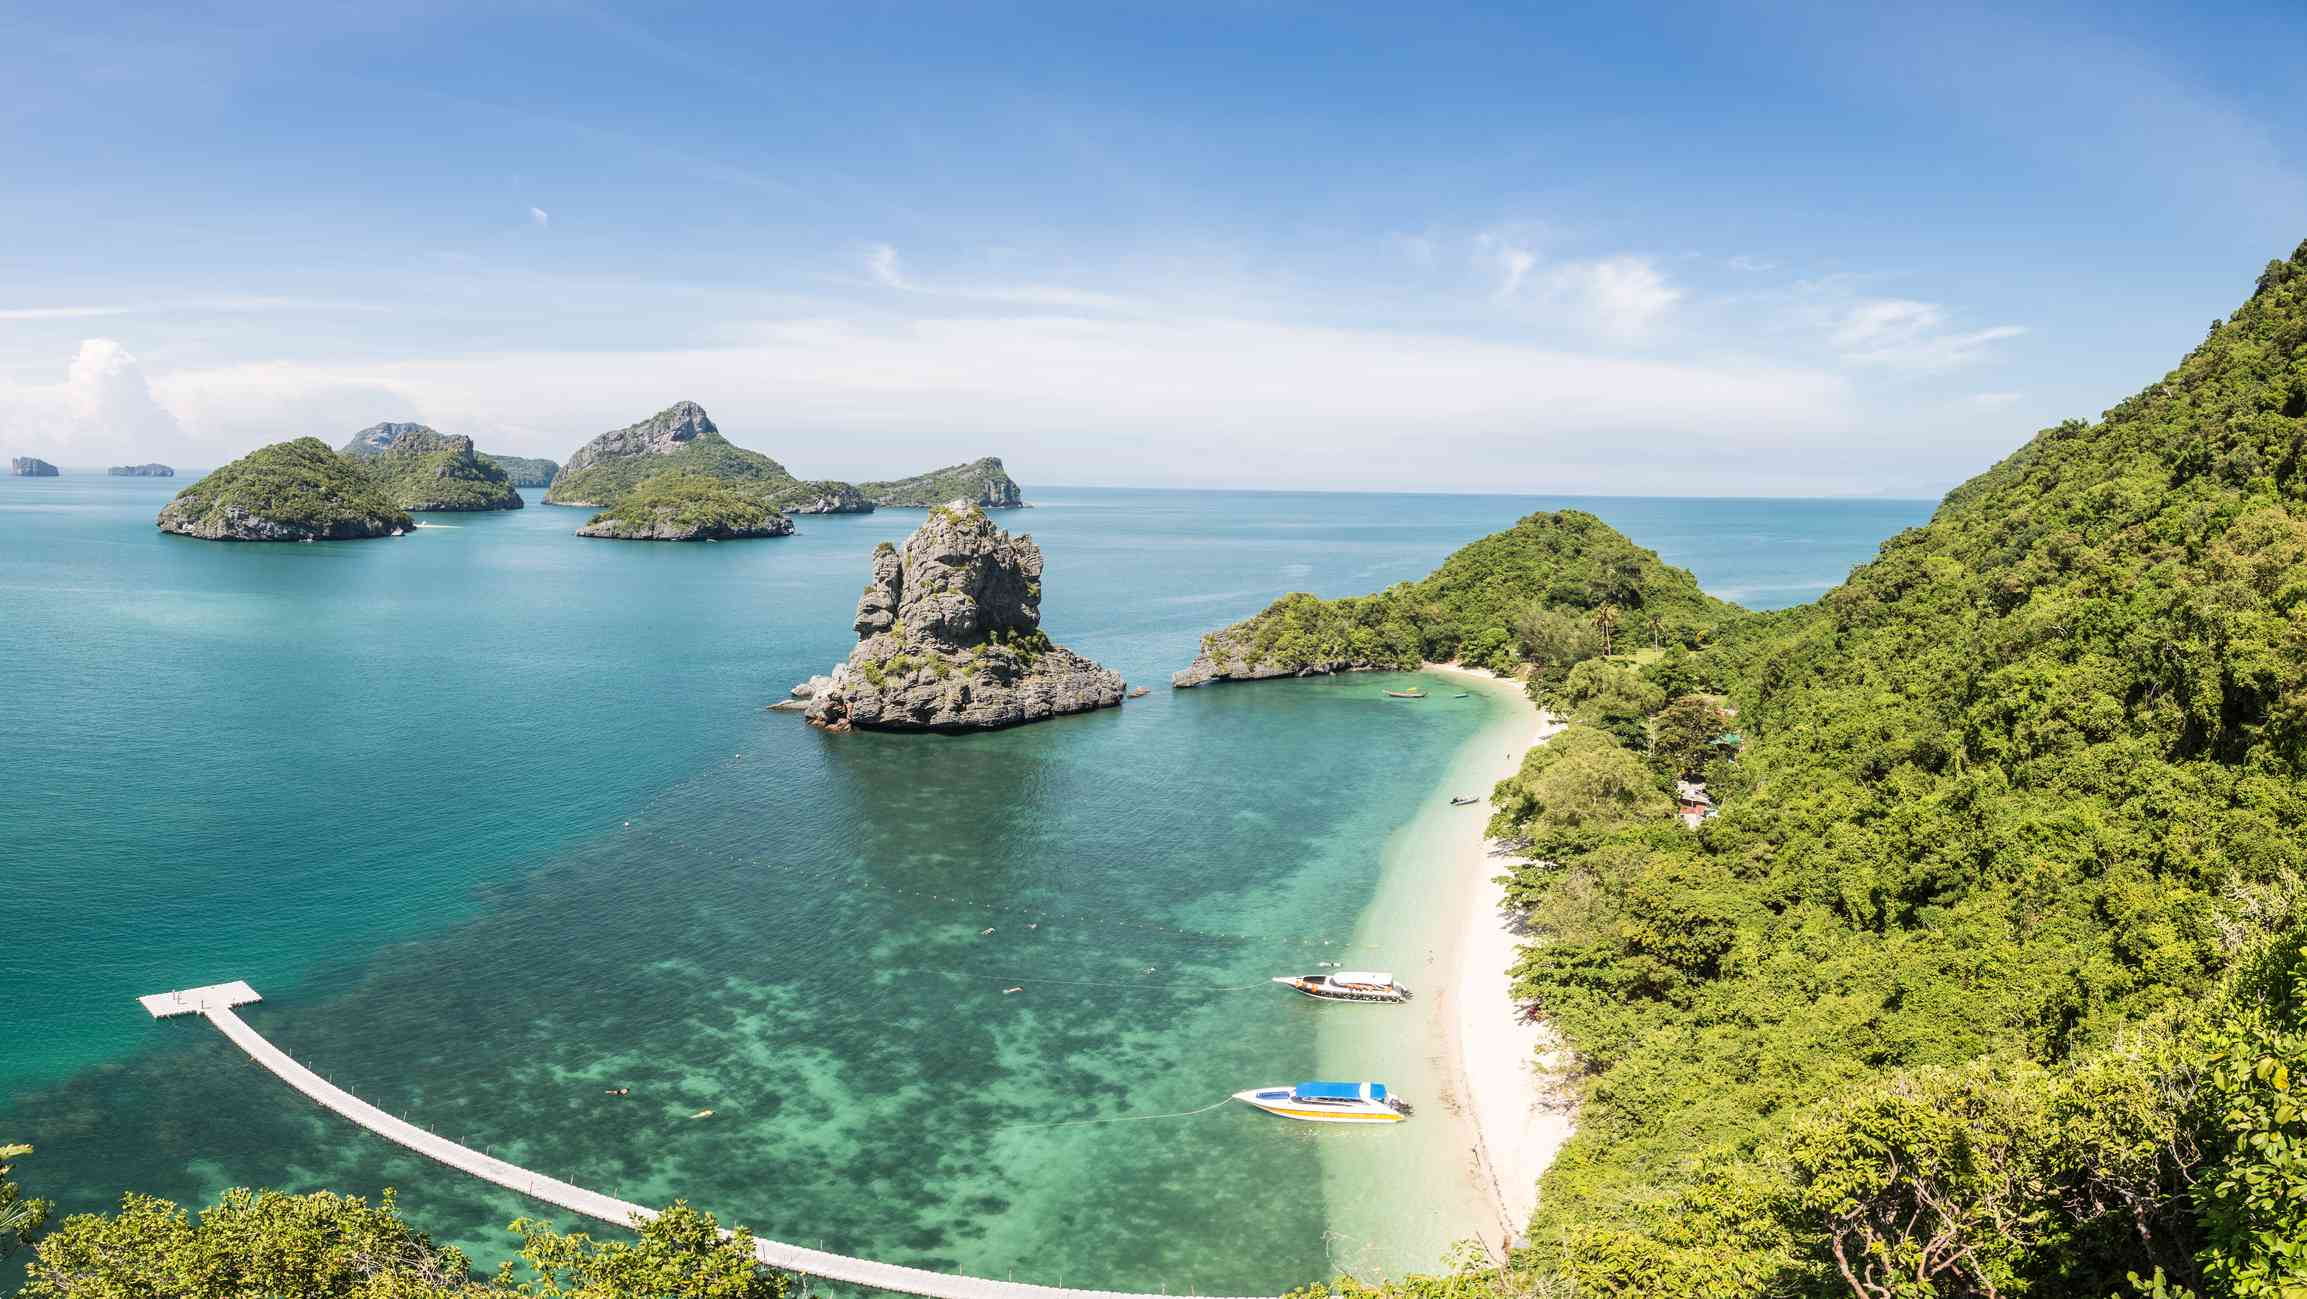 Some of the Mu Ko Ang Thong islands in the Sea of Thailand